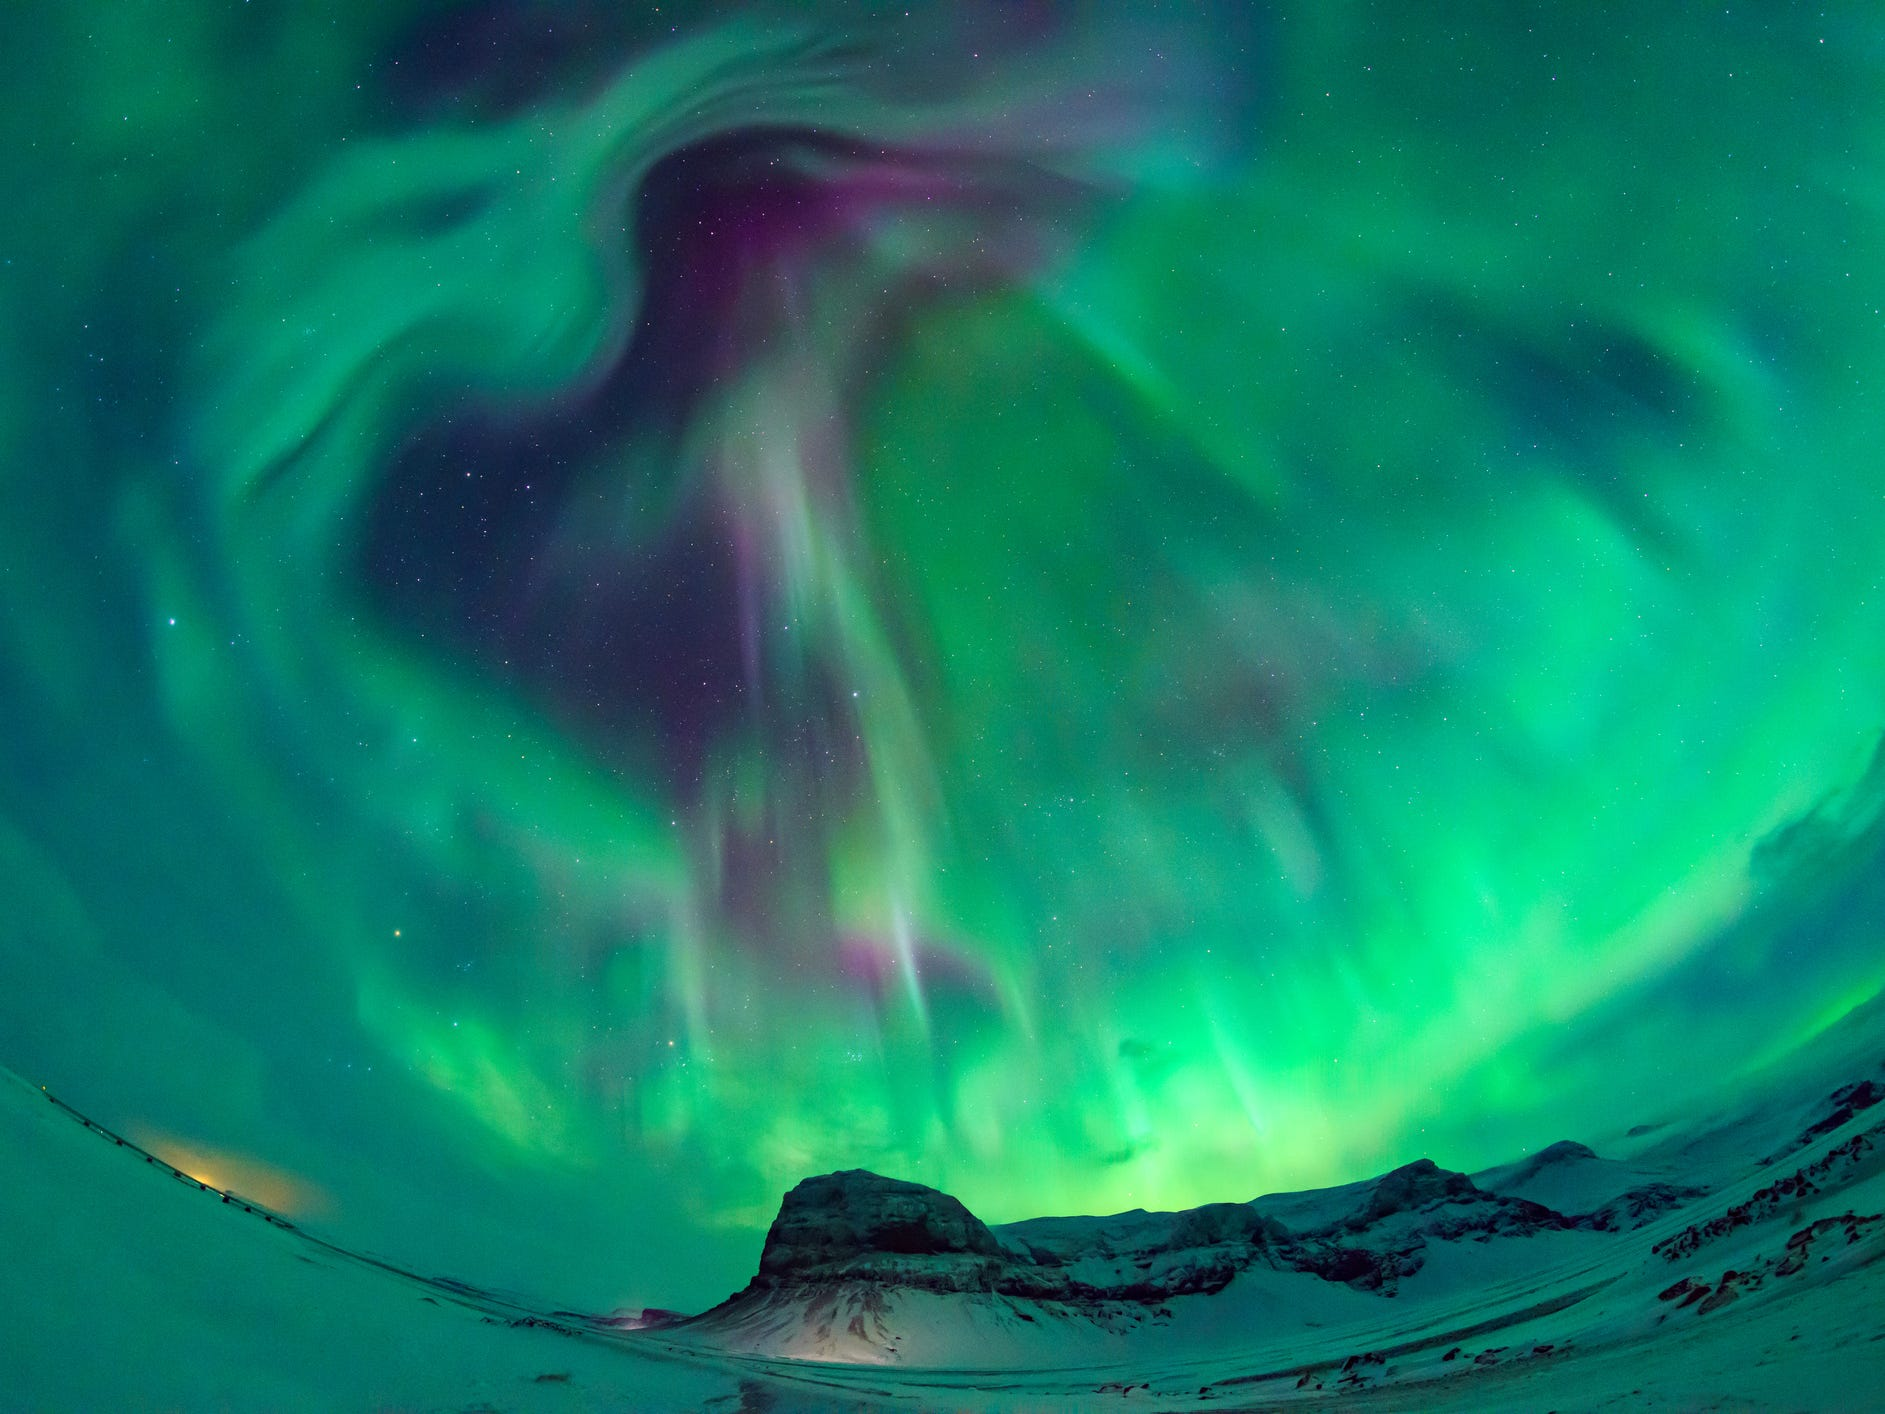 The northern lights in Iceland.